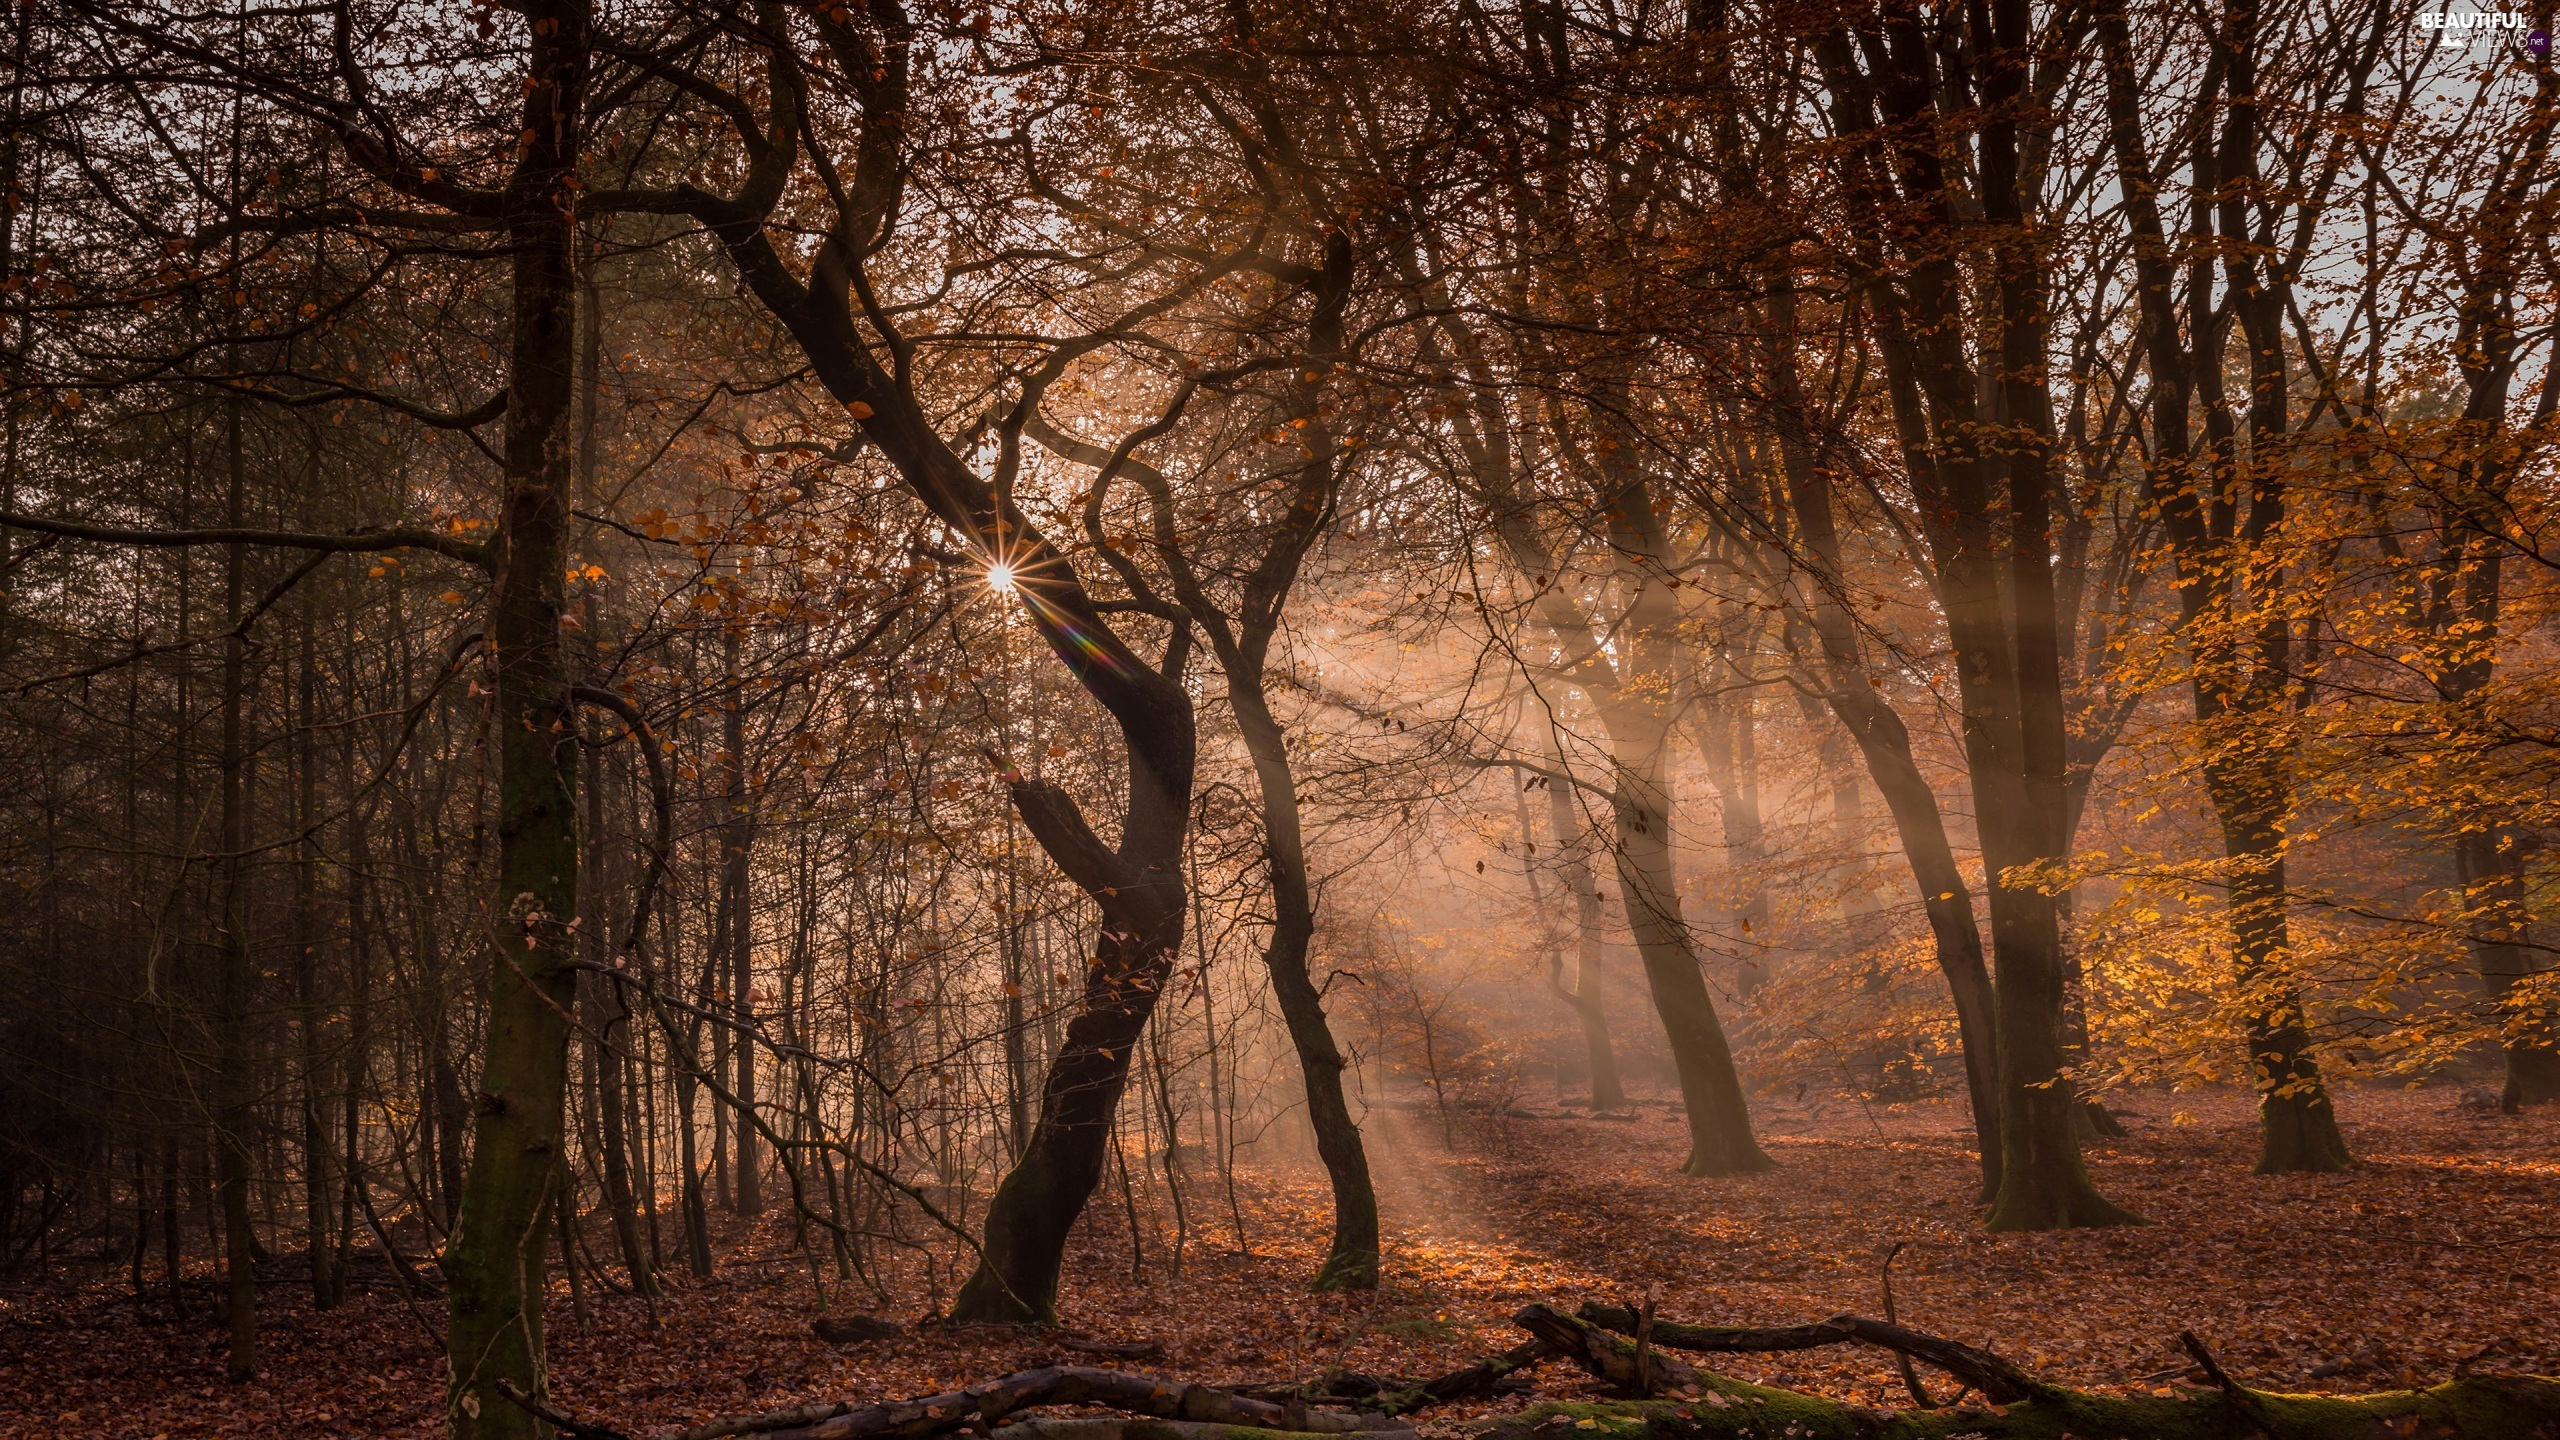 viewes, forest, rays of the Sun, light breaking through sky, autumn, trees